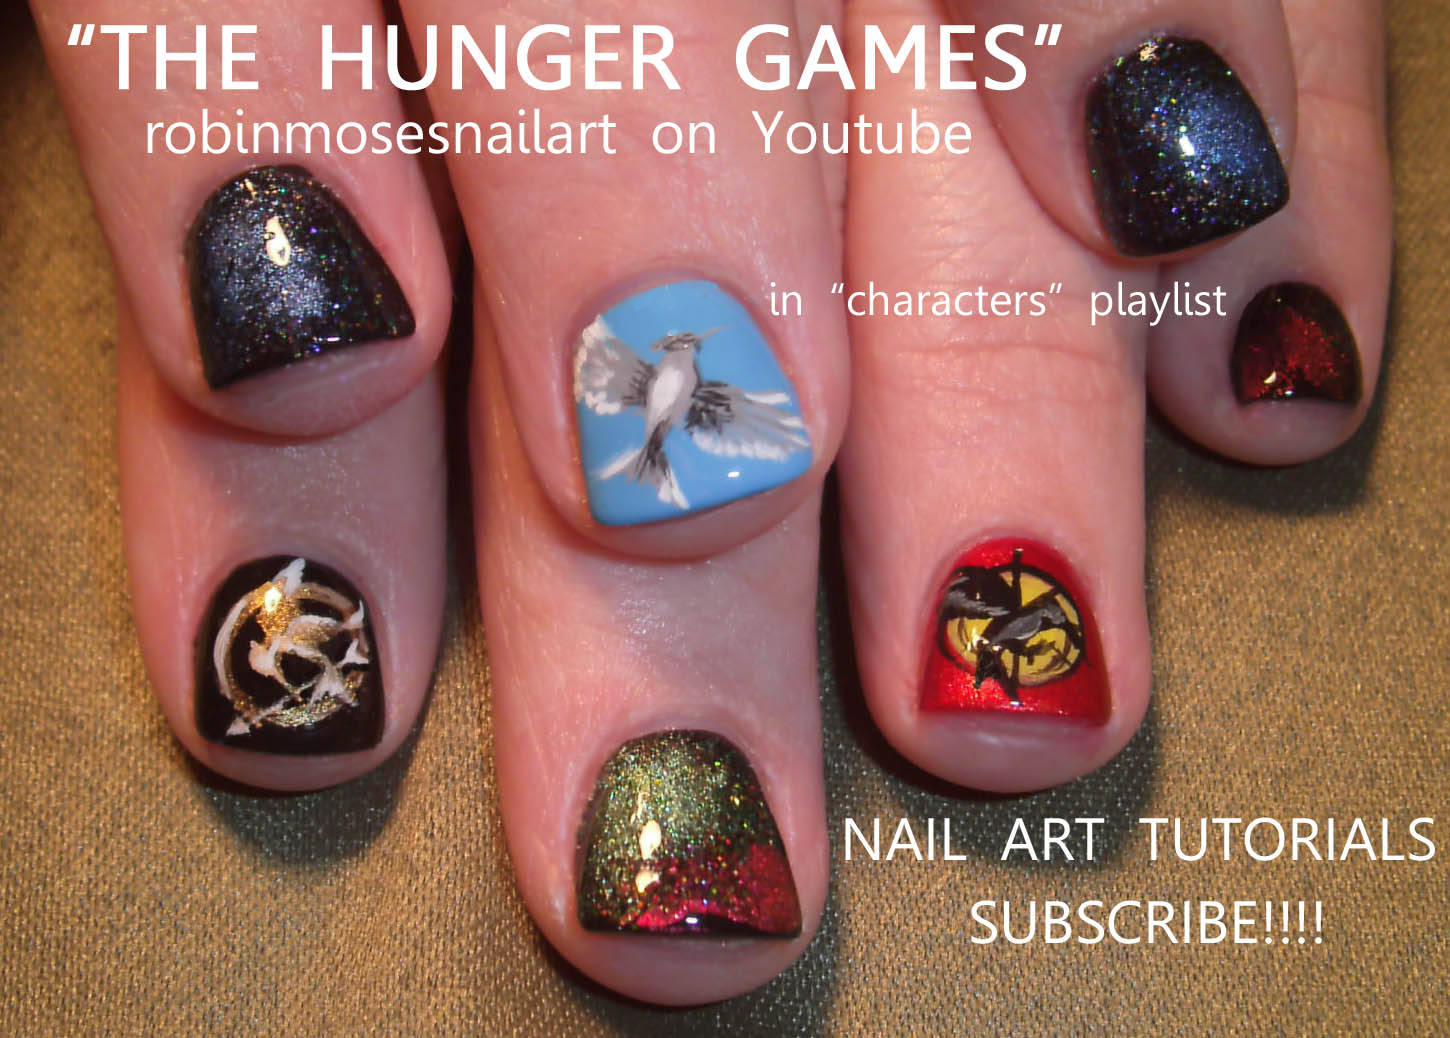 the hunger games nail, hunger games nail, hunger games nail art, mockingjay  nail, mockingbird nail, jabberjay nail, robinmosesnailart, hunger games  nailart, ... - Nail Art Design: The Hunger Games Nail, Hunger Games Nail, Hunger